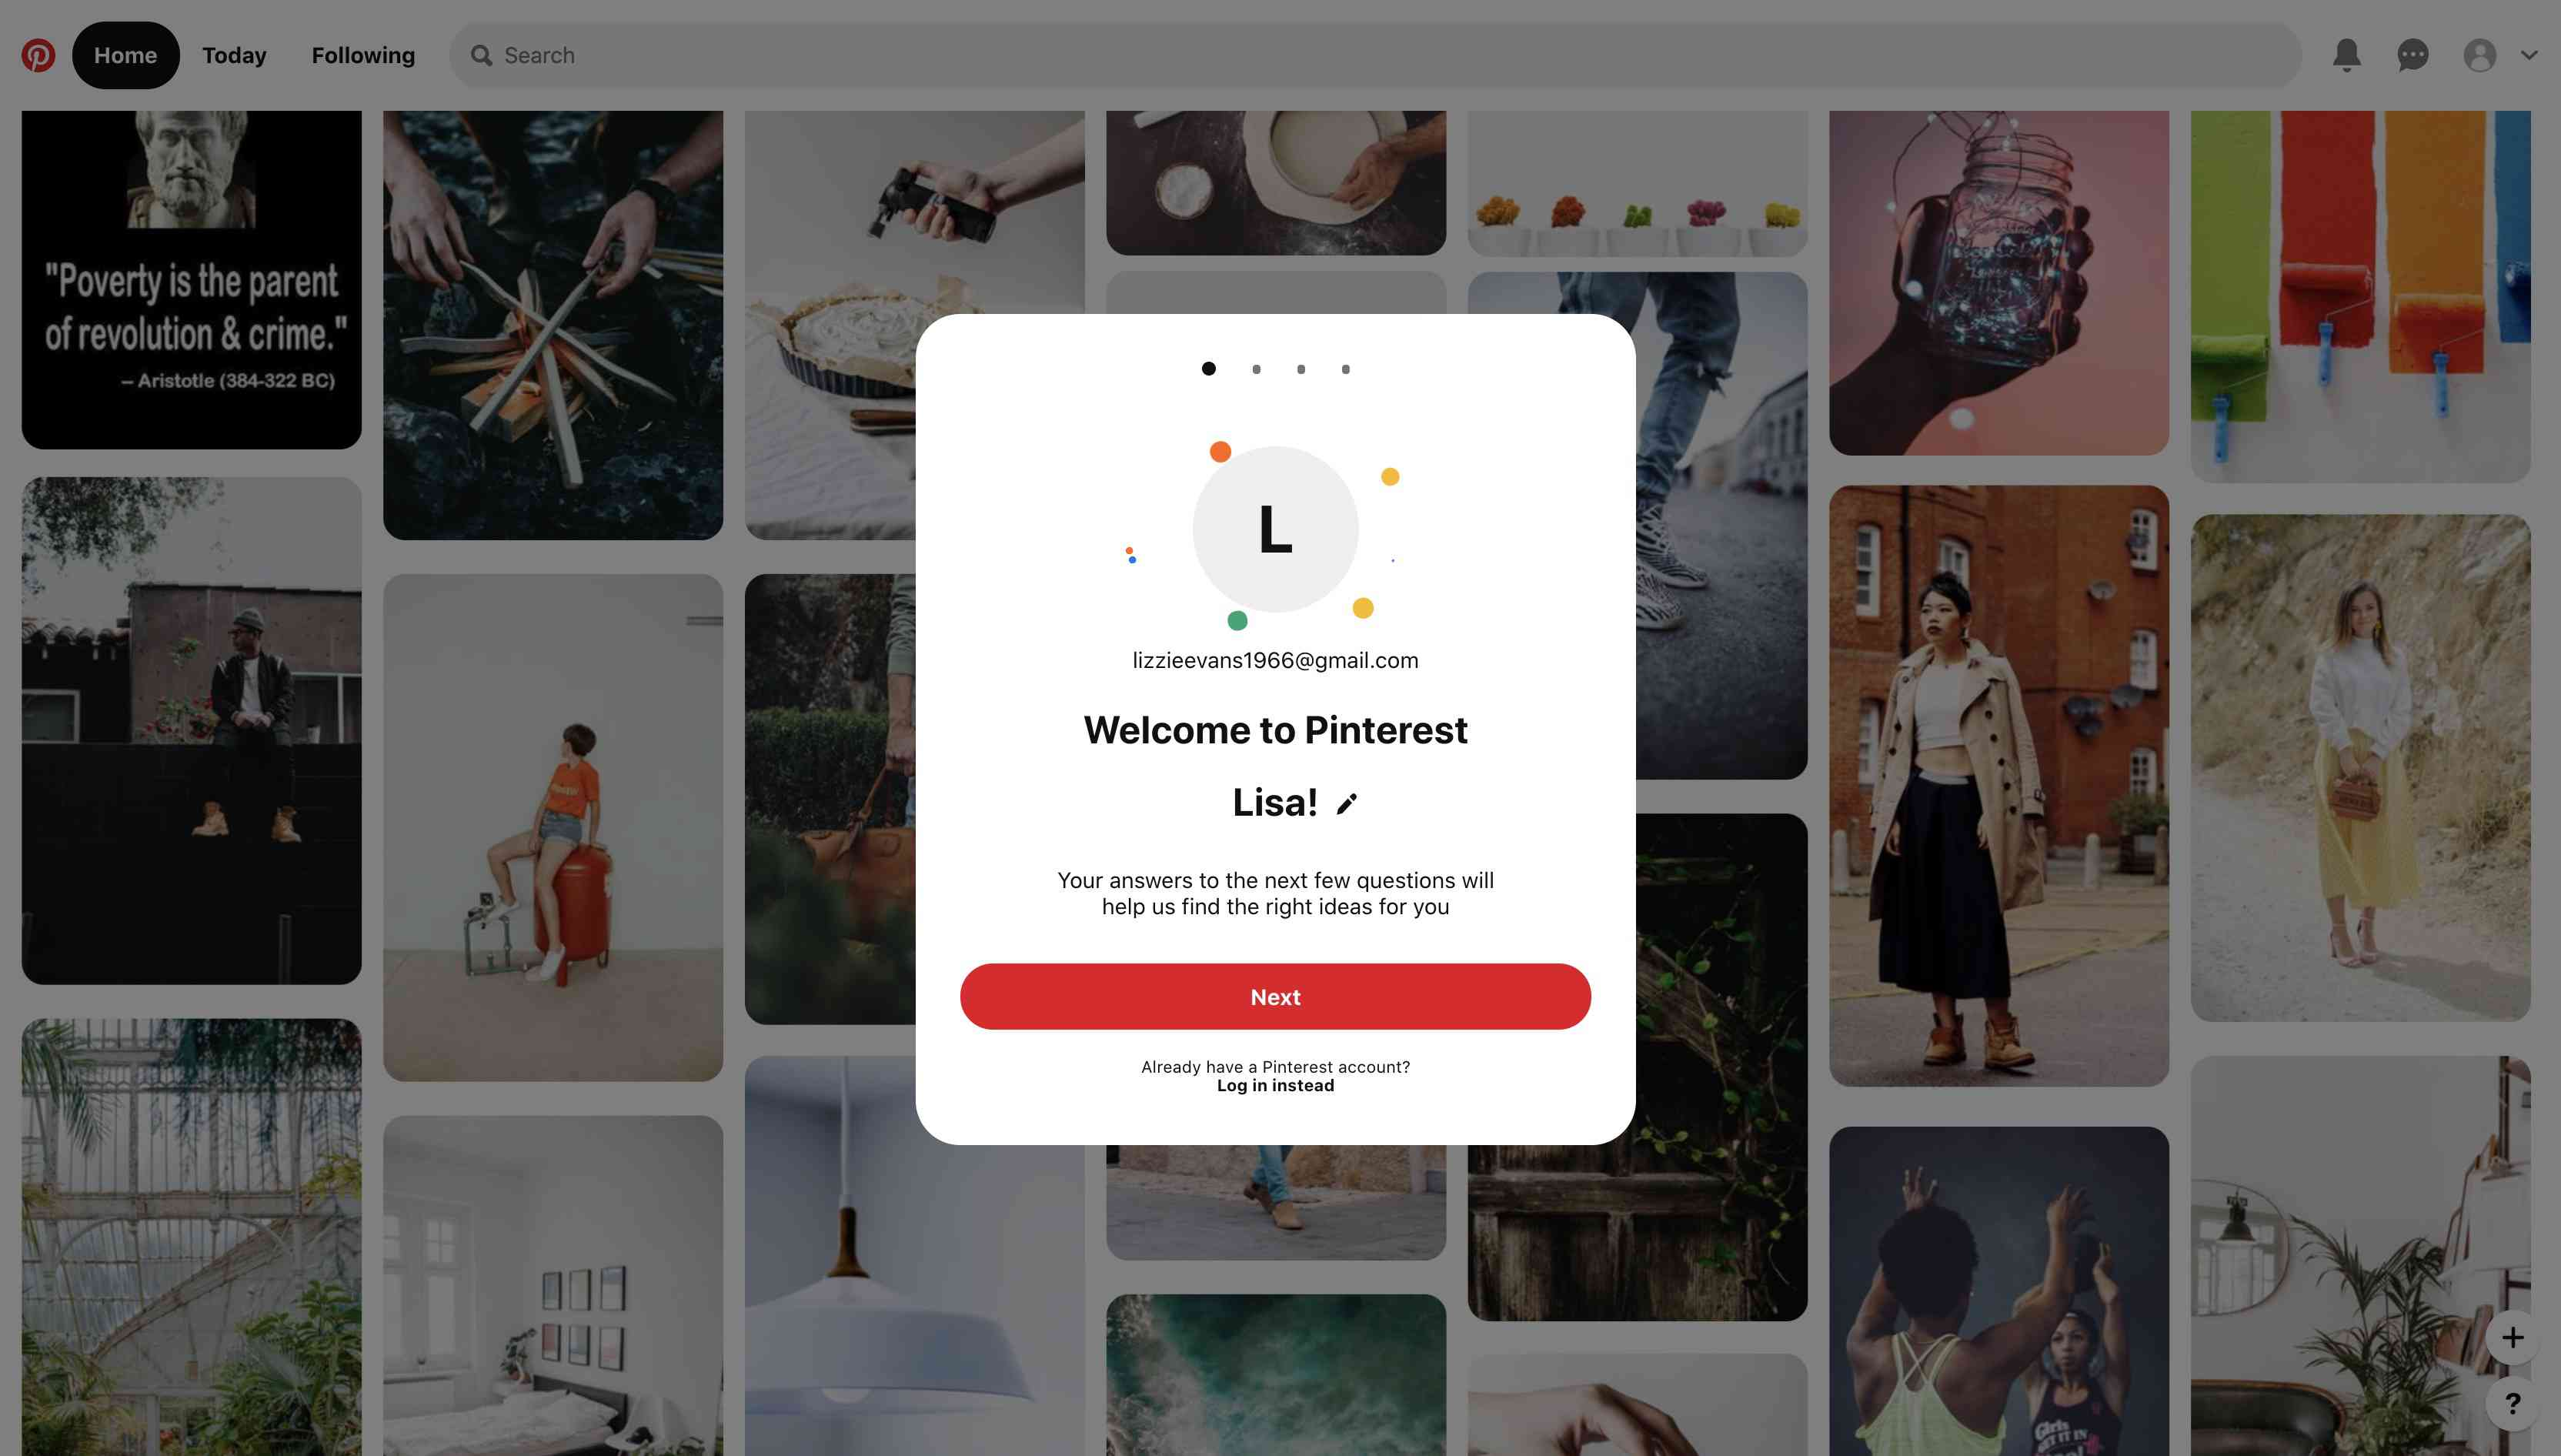 Welcome to Pinterest message